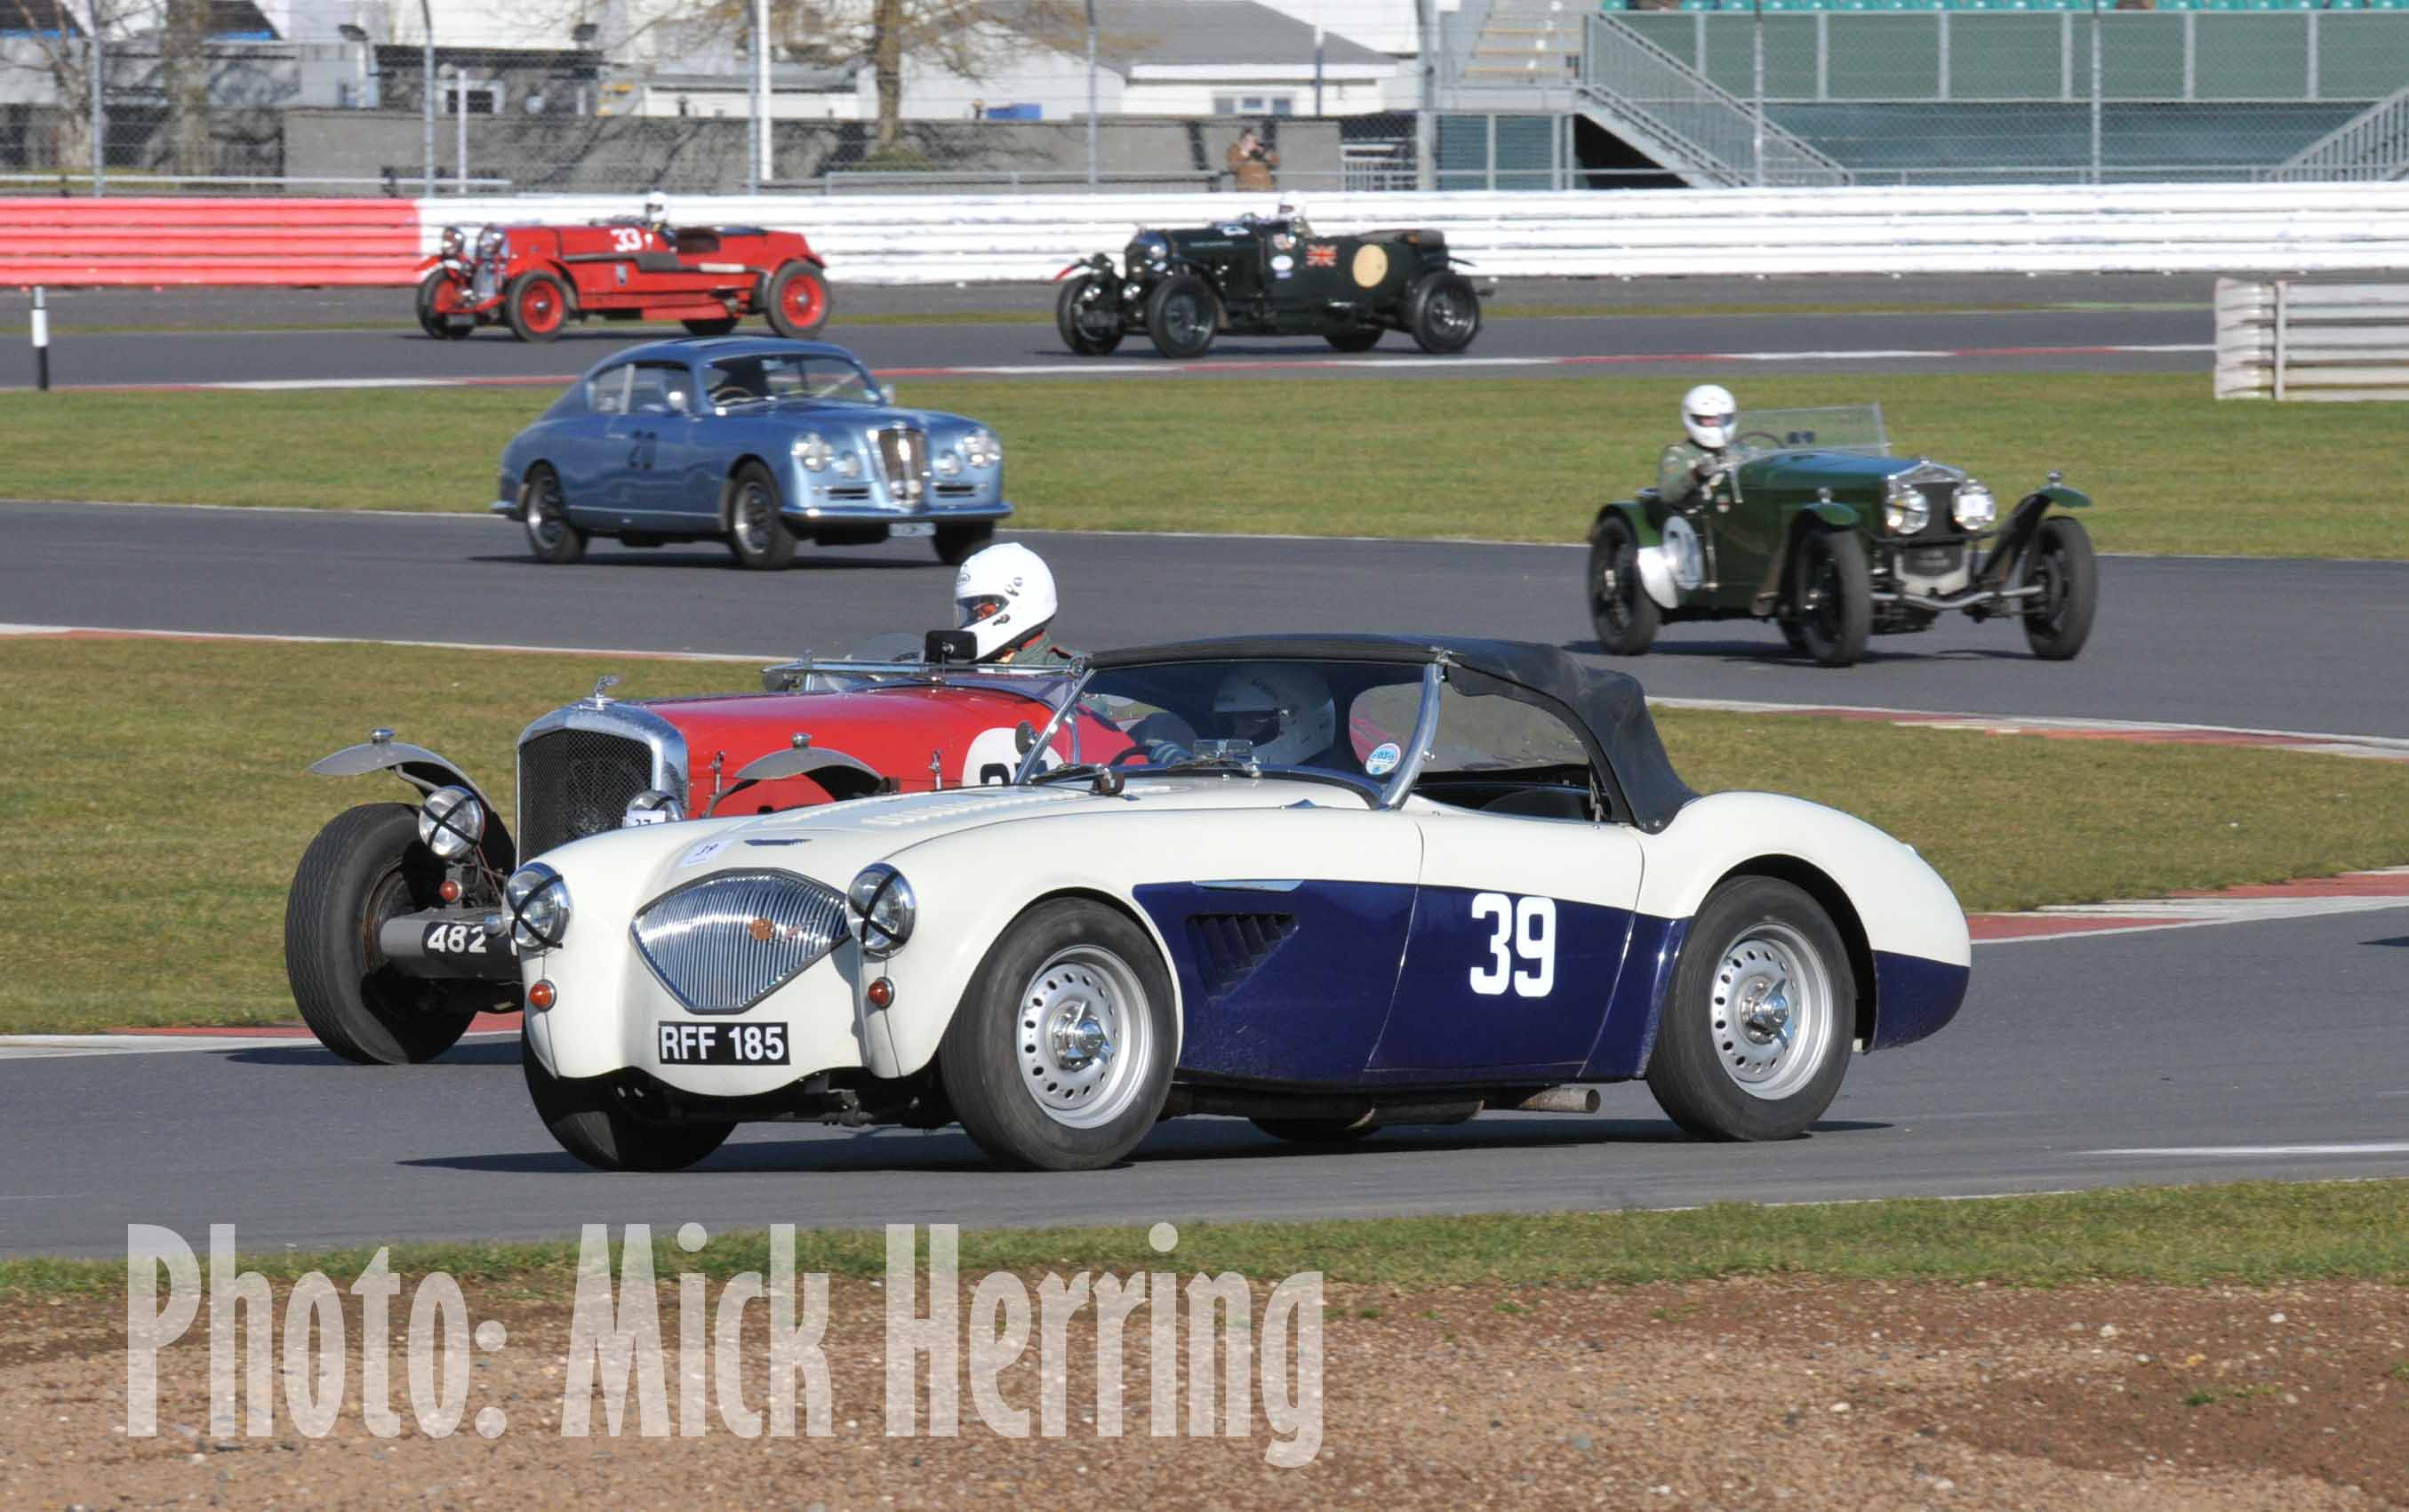 It's time for the one and only VSCC Pomeroy Trophy – this weekend at Silverstone cover